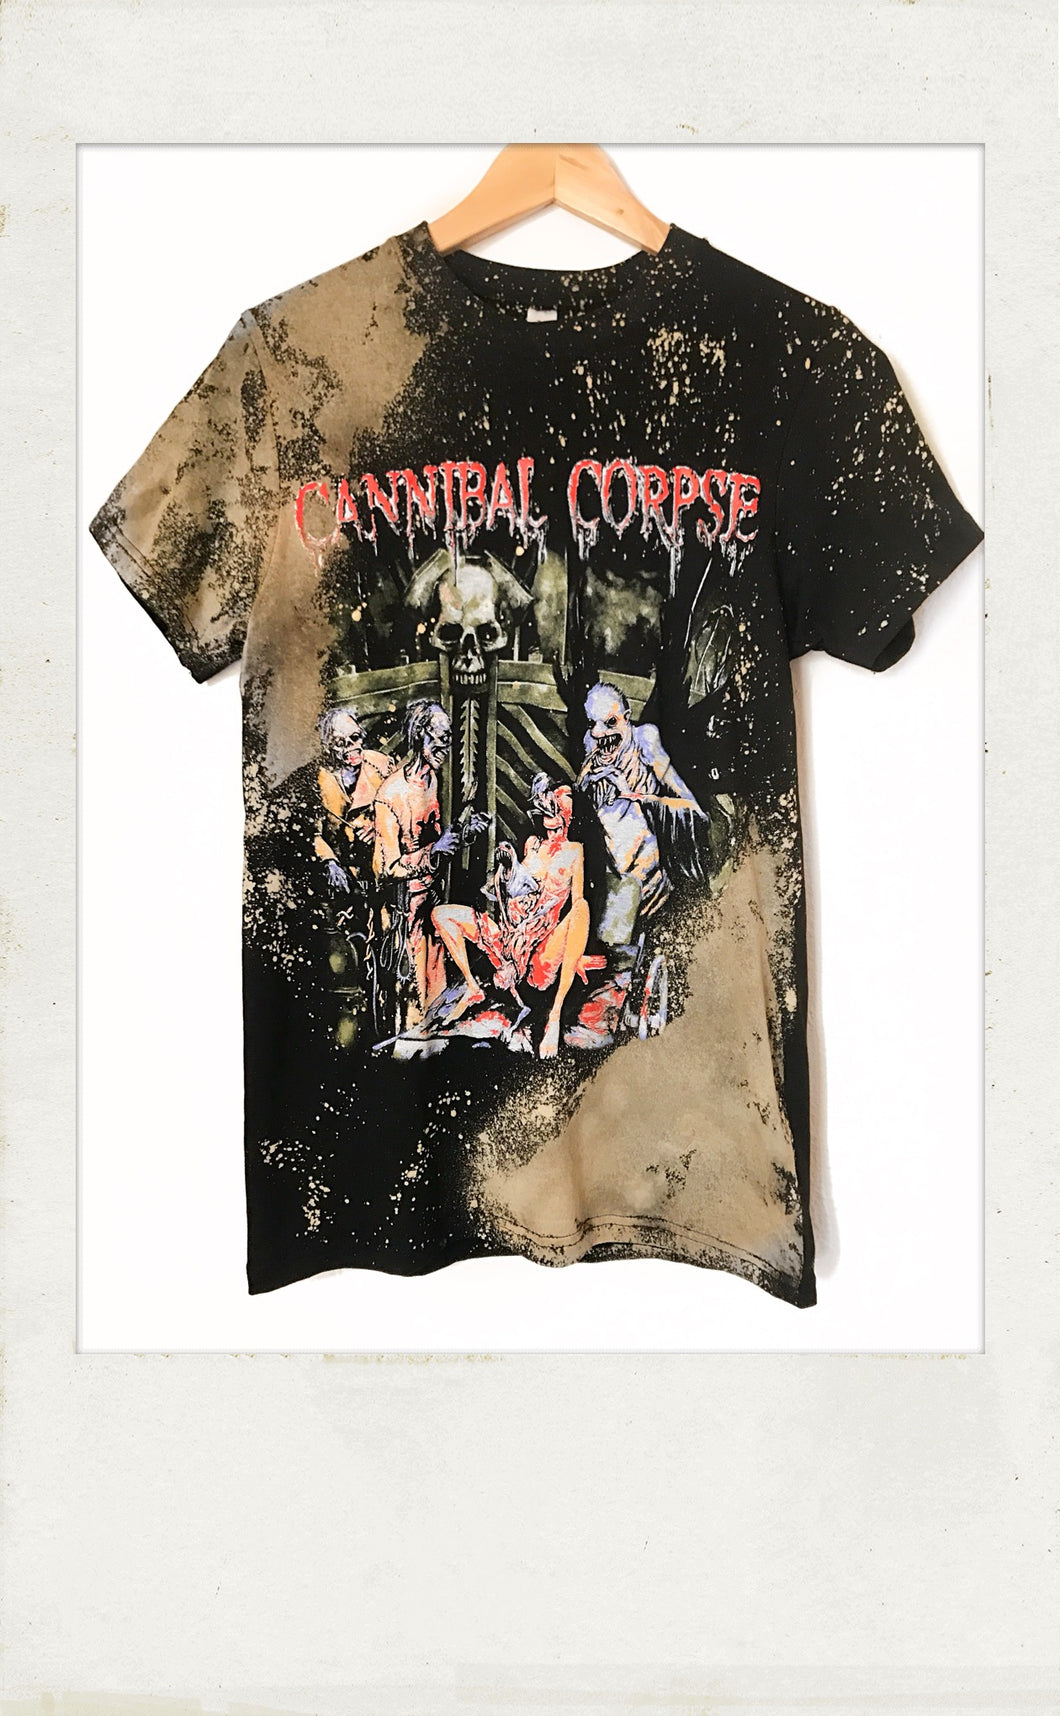 Cannibal Corpse T Shirt